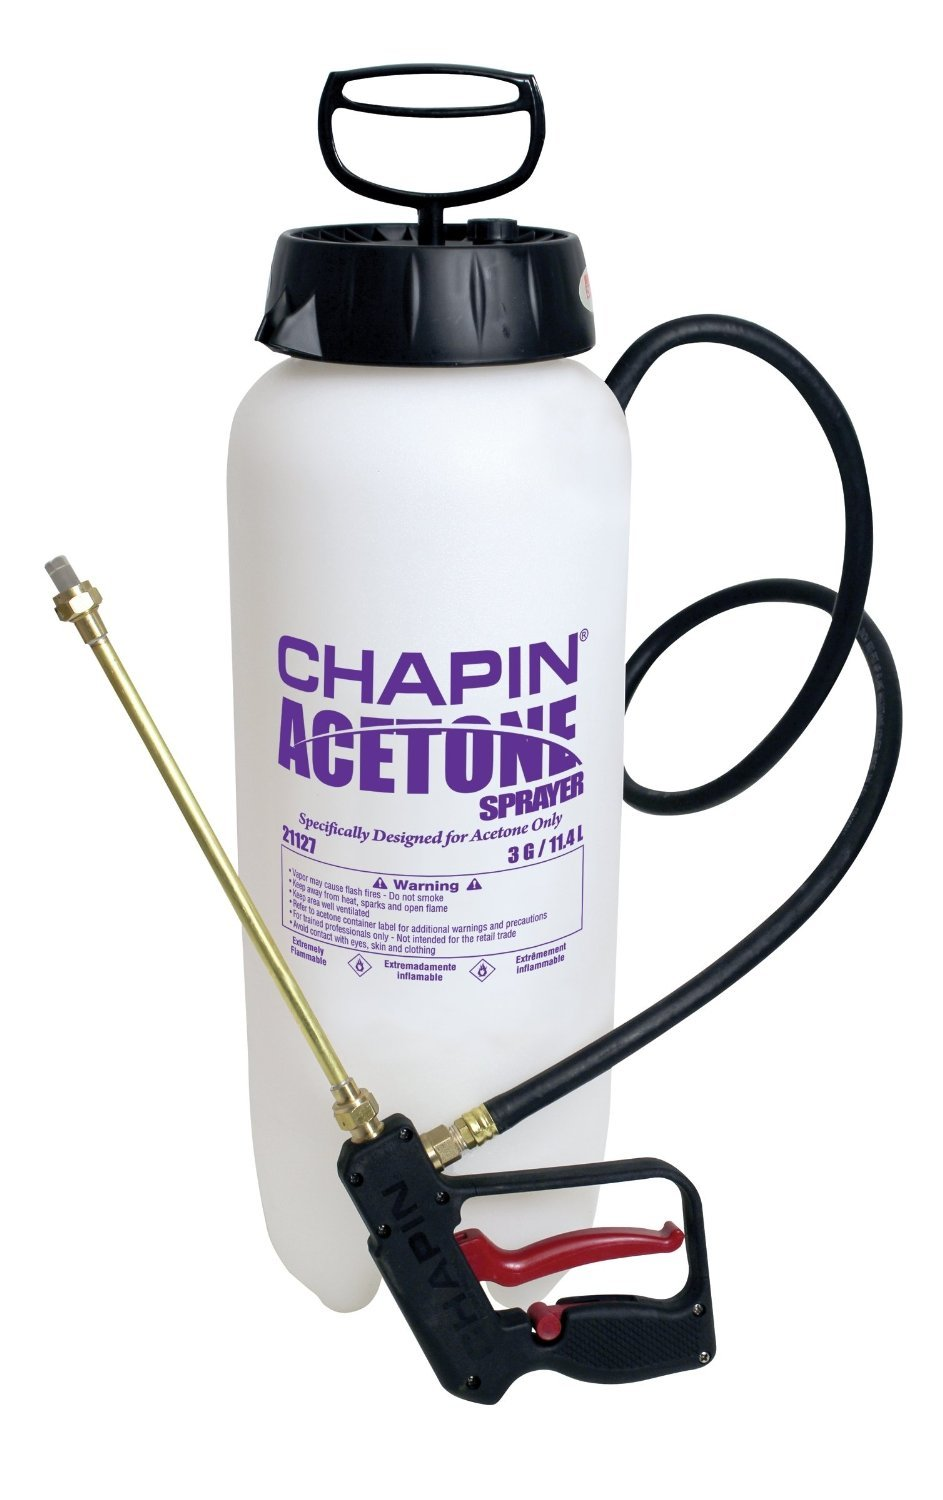 Chapin Acetone 3 Gallon Sprayer with Dripless Shut-off (21127XP)